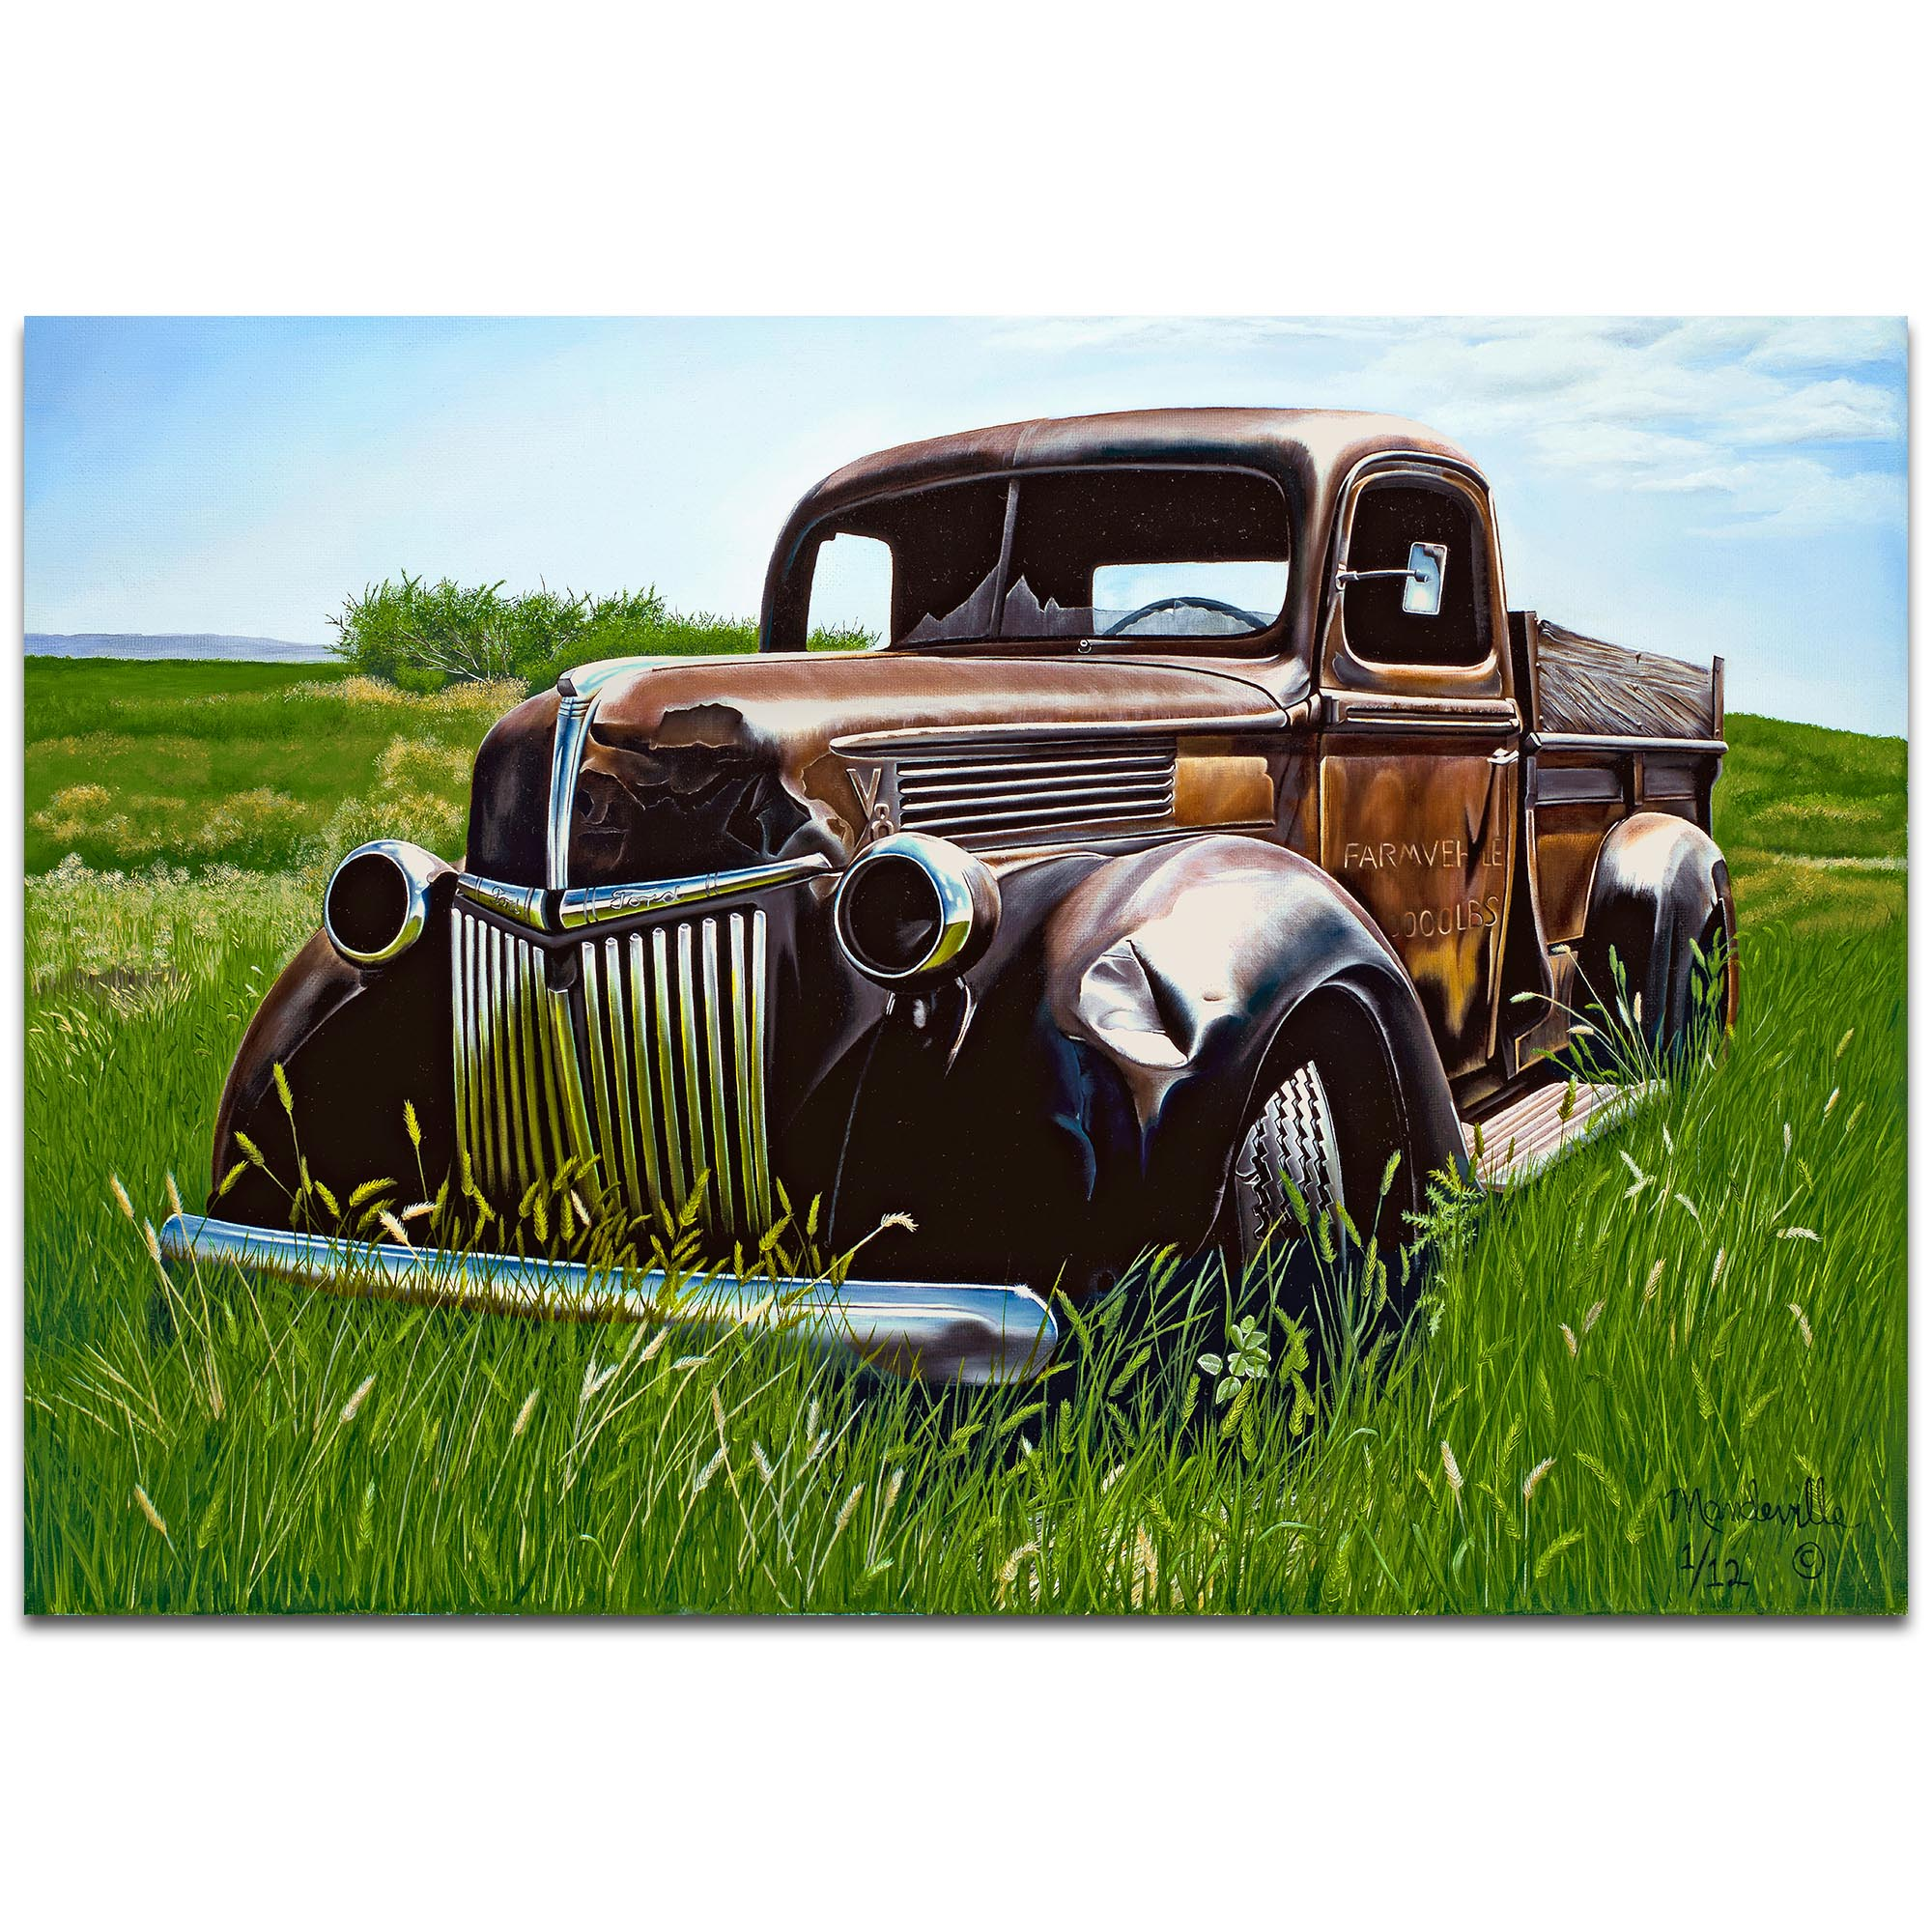 Americana Wall Art 'Out to Pasture' - Classic Trucks Decor on Metal or Plexiglass